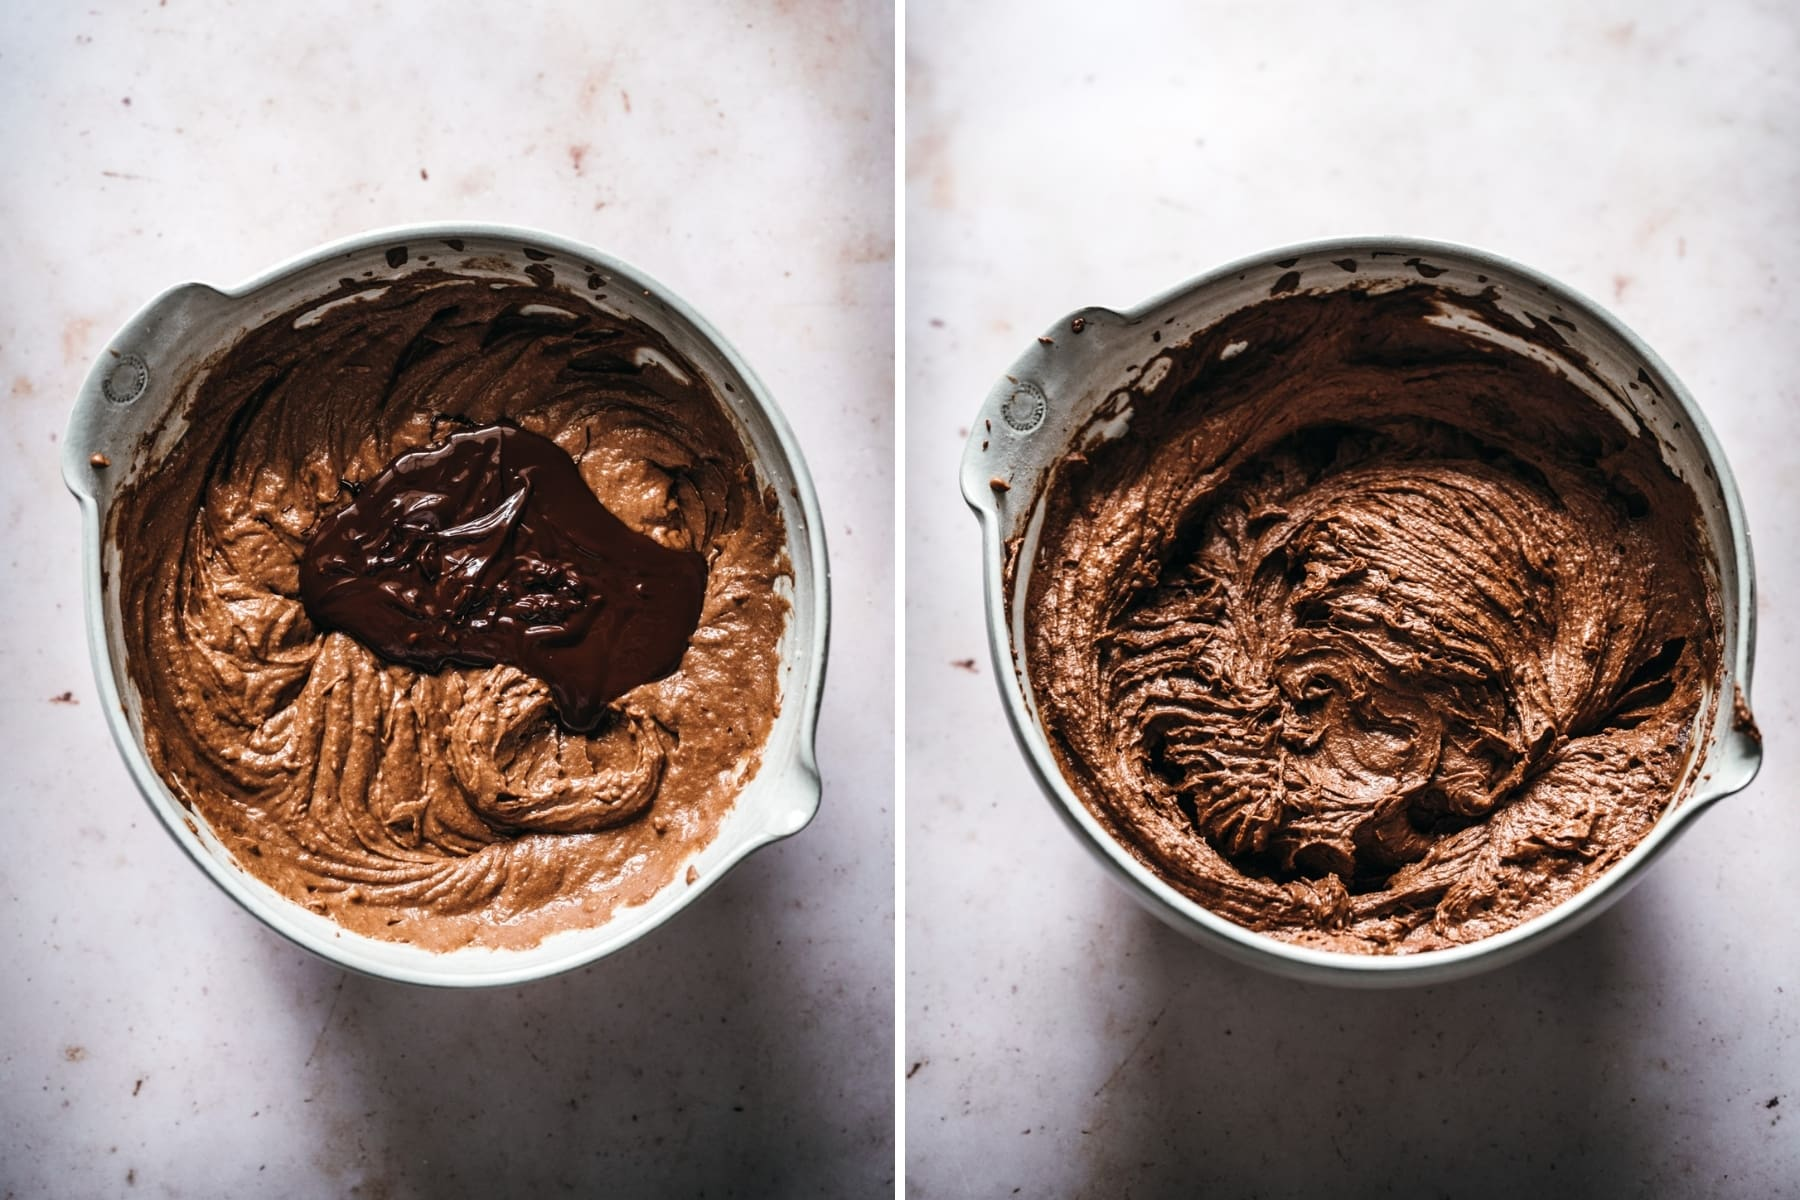 before and after mixing melted dark chocolate into cupcake batter.